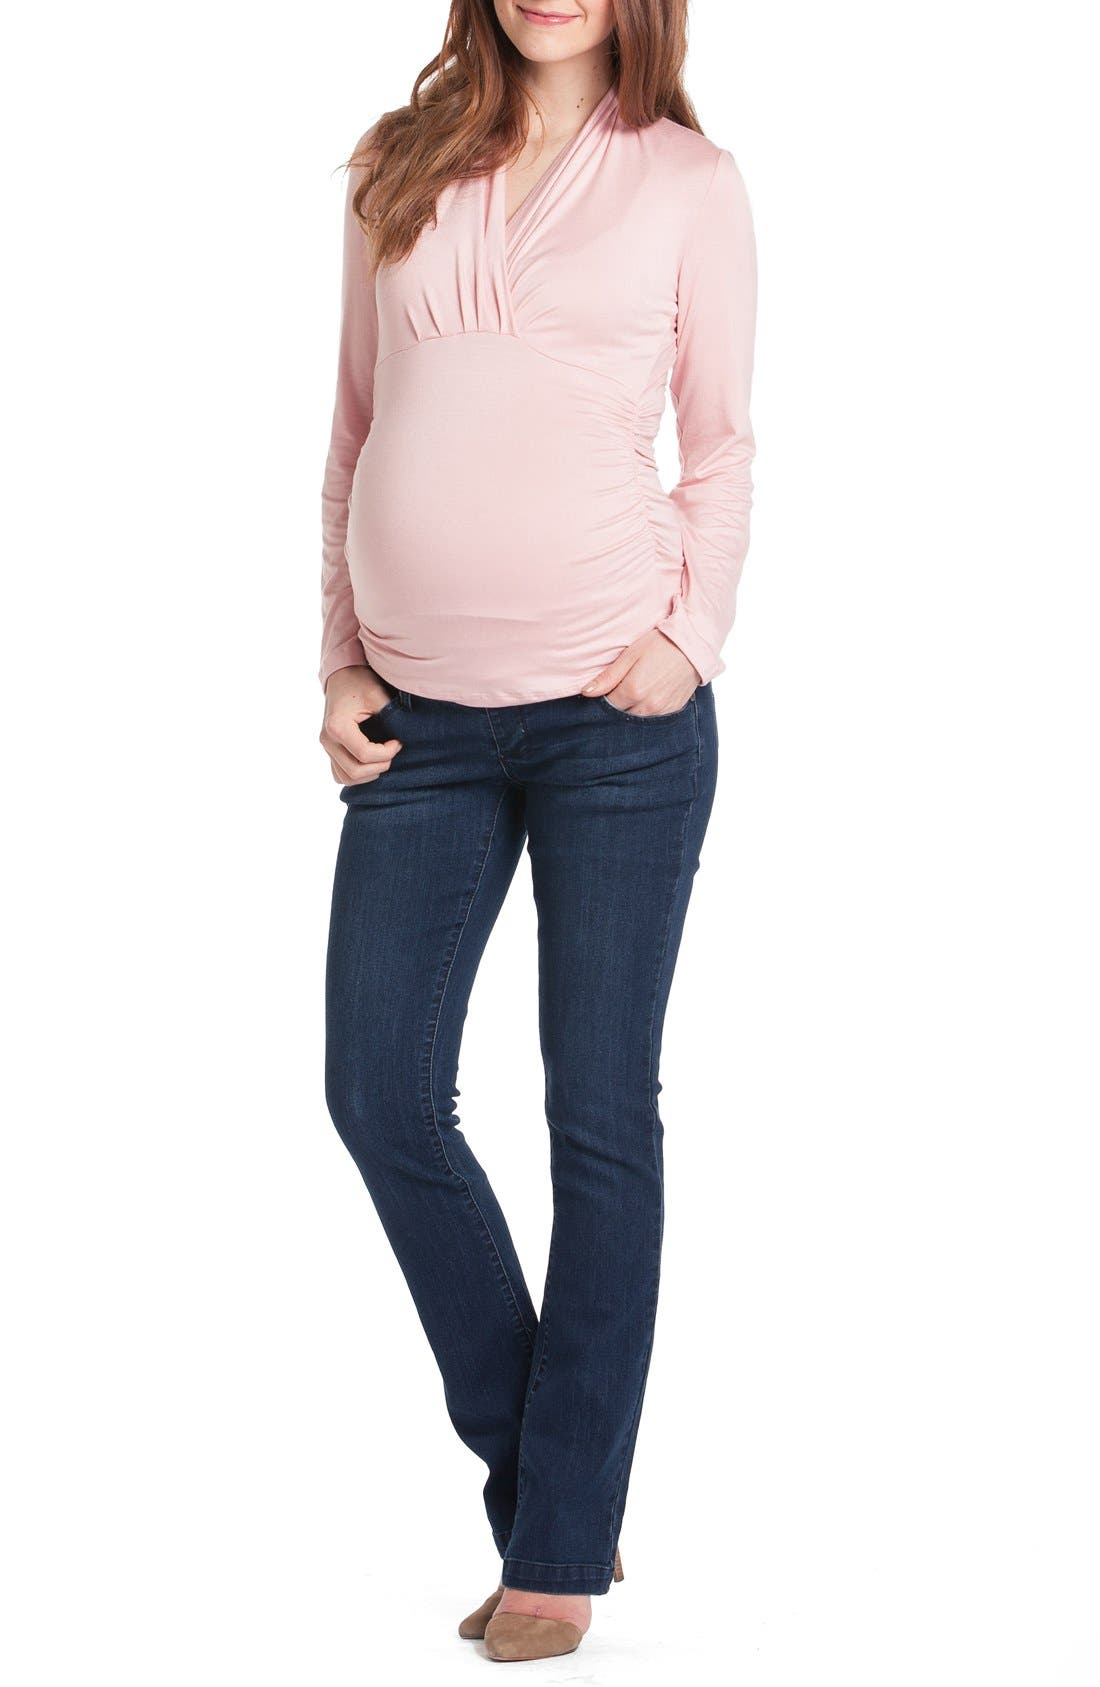 Alternate Image 1 Selected - Lilac Clothing Megan Maternity Top